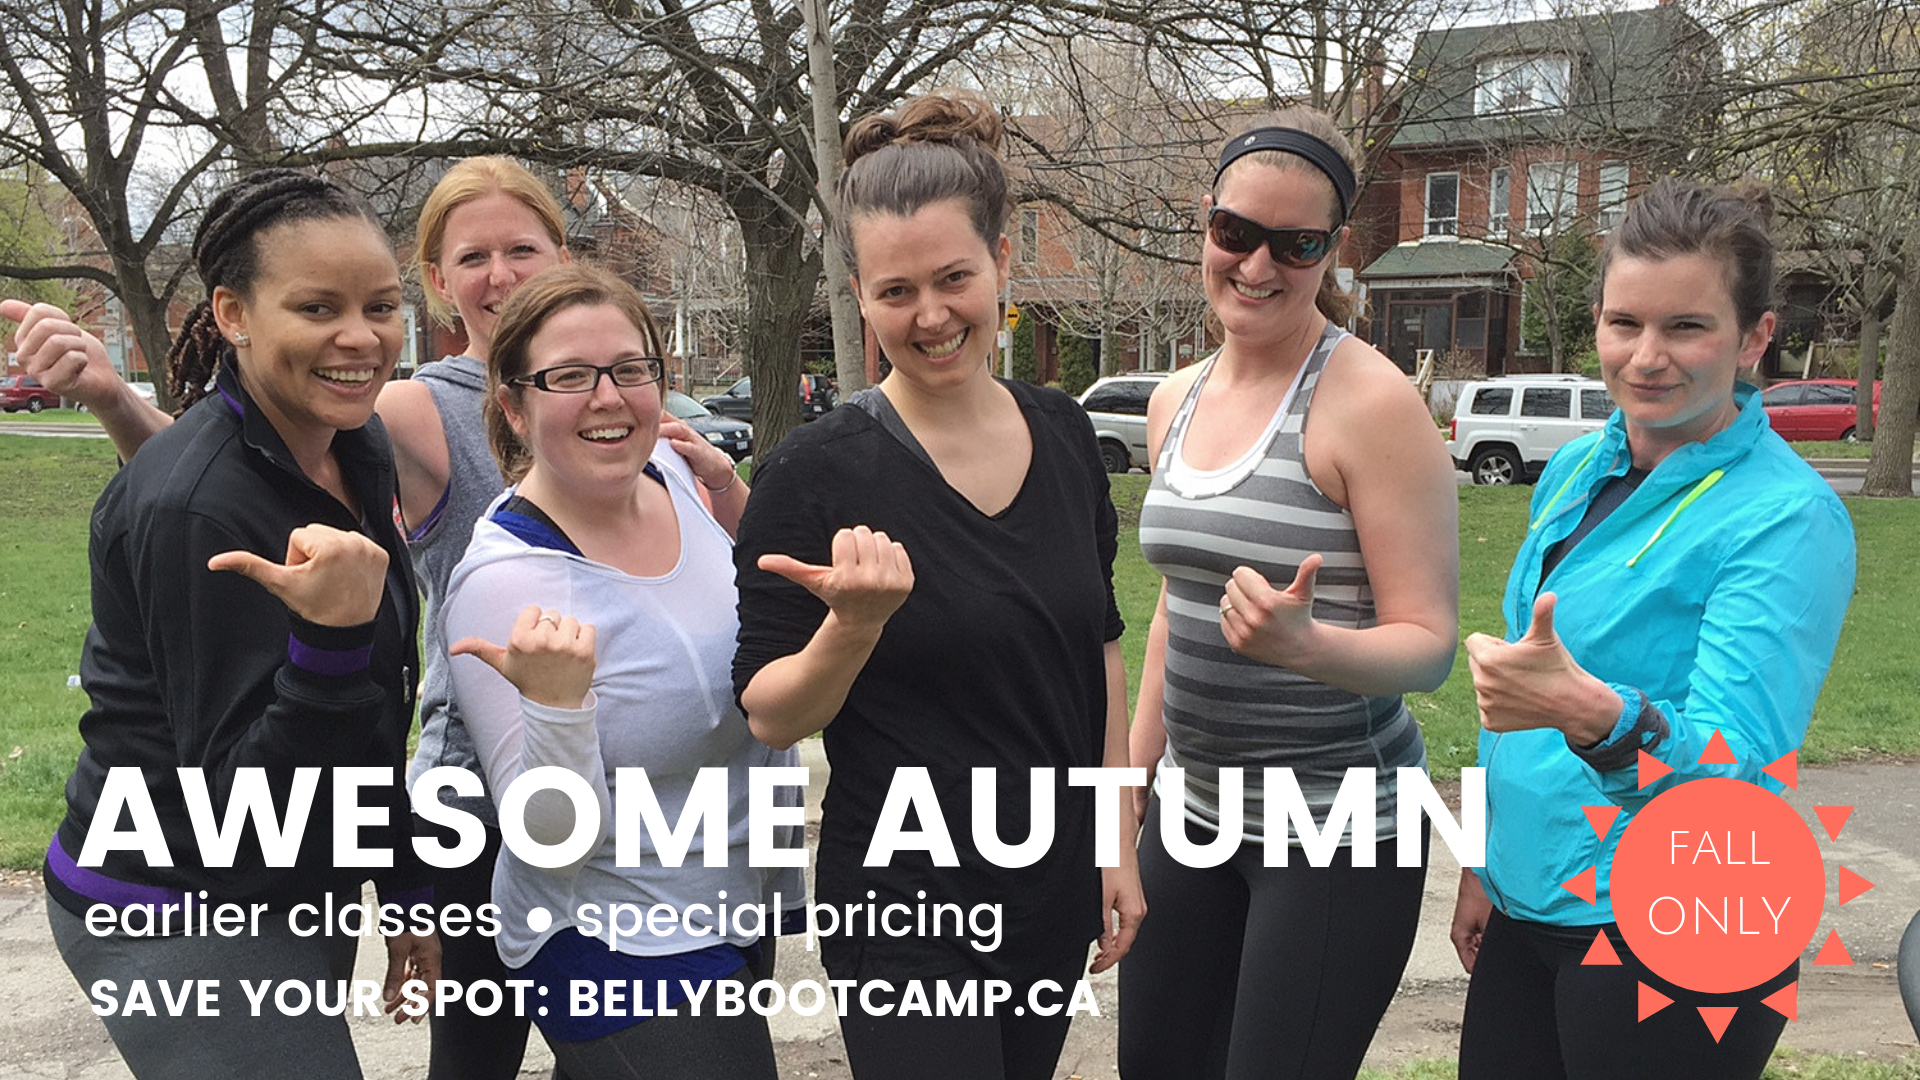 AwesomeAutumn-Belly-Bootcamp-2018.png